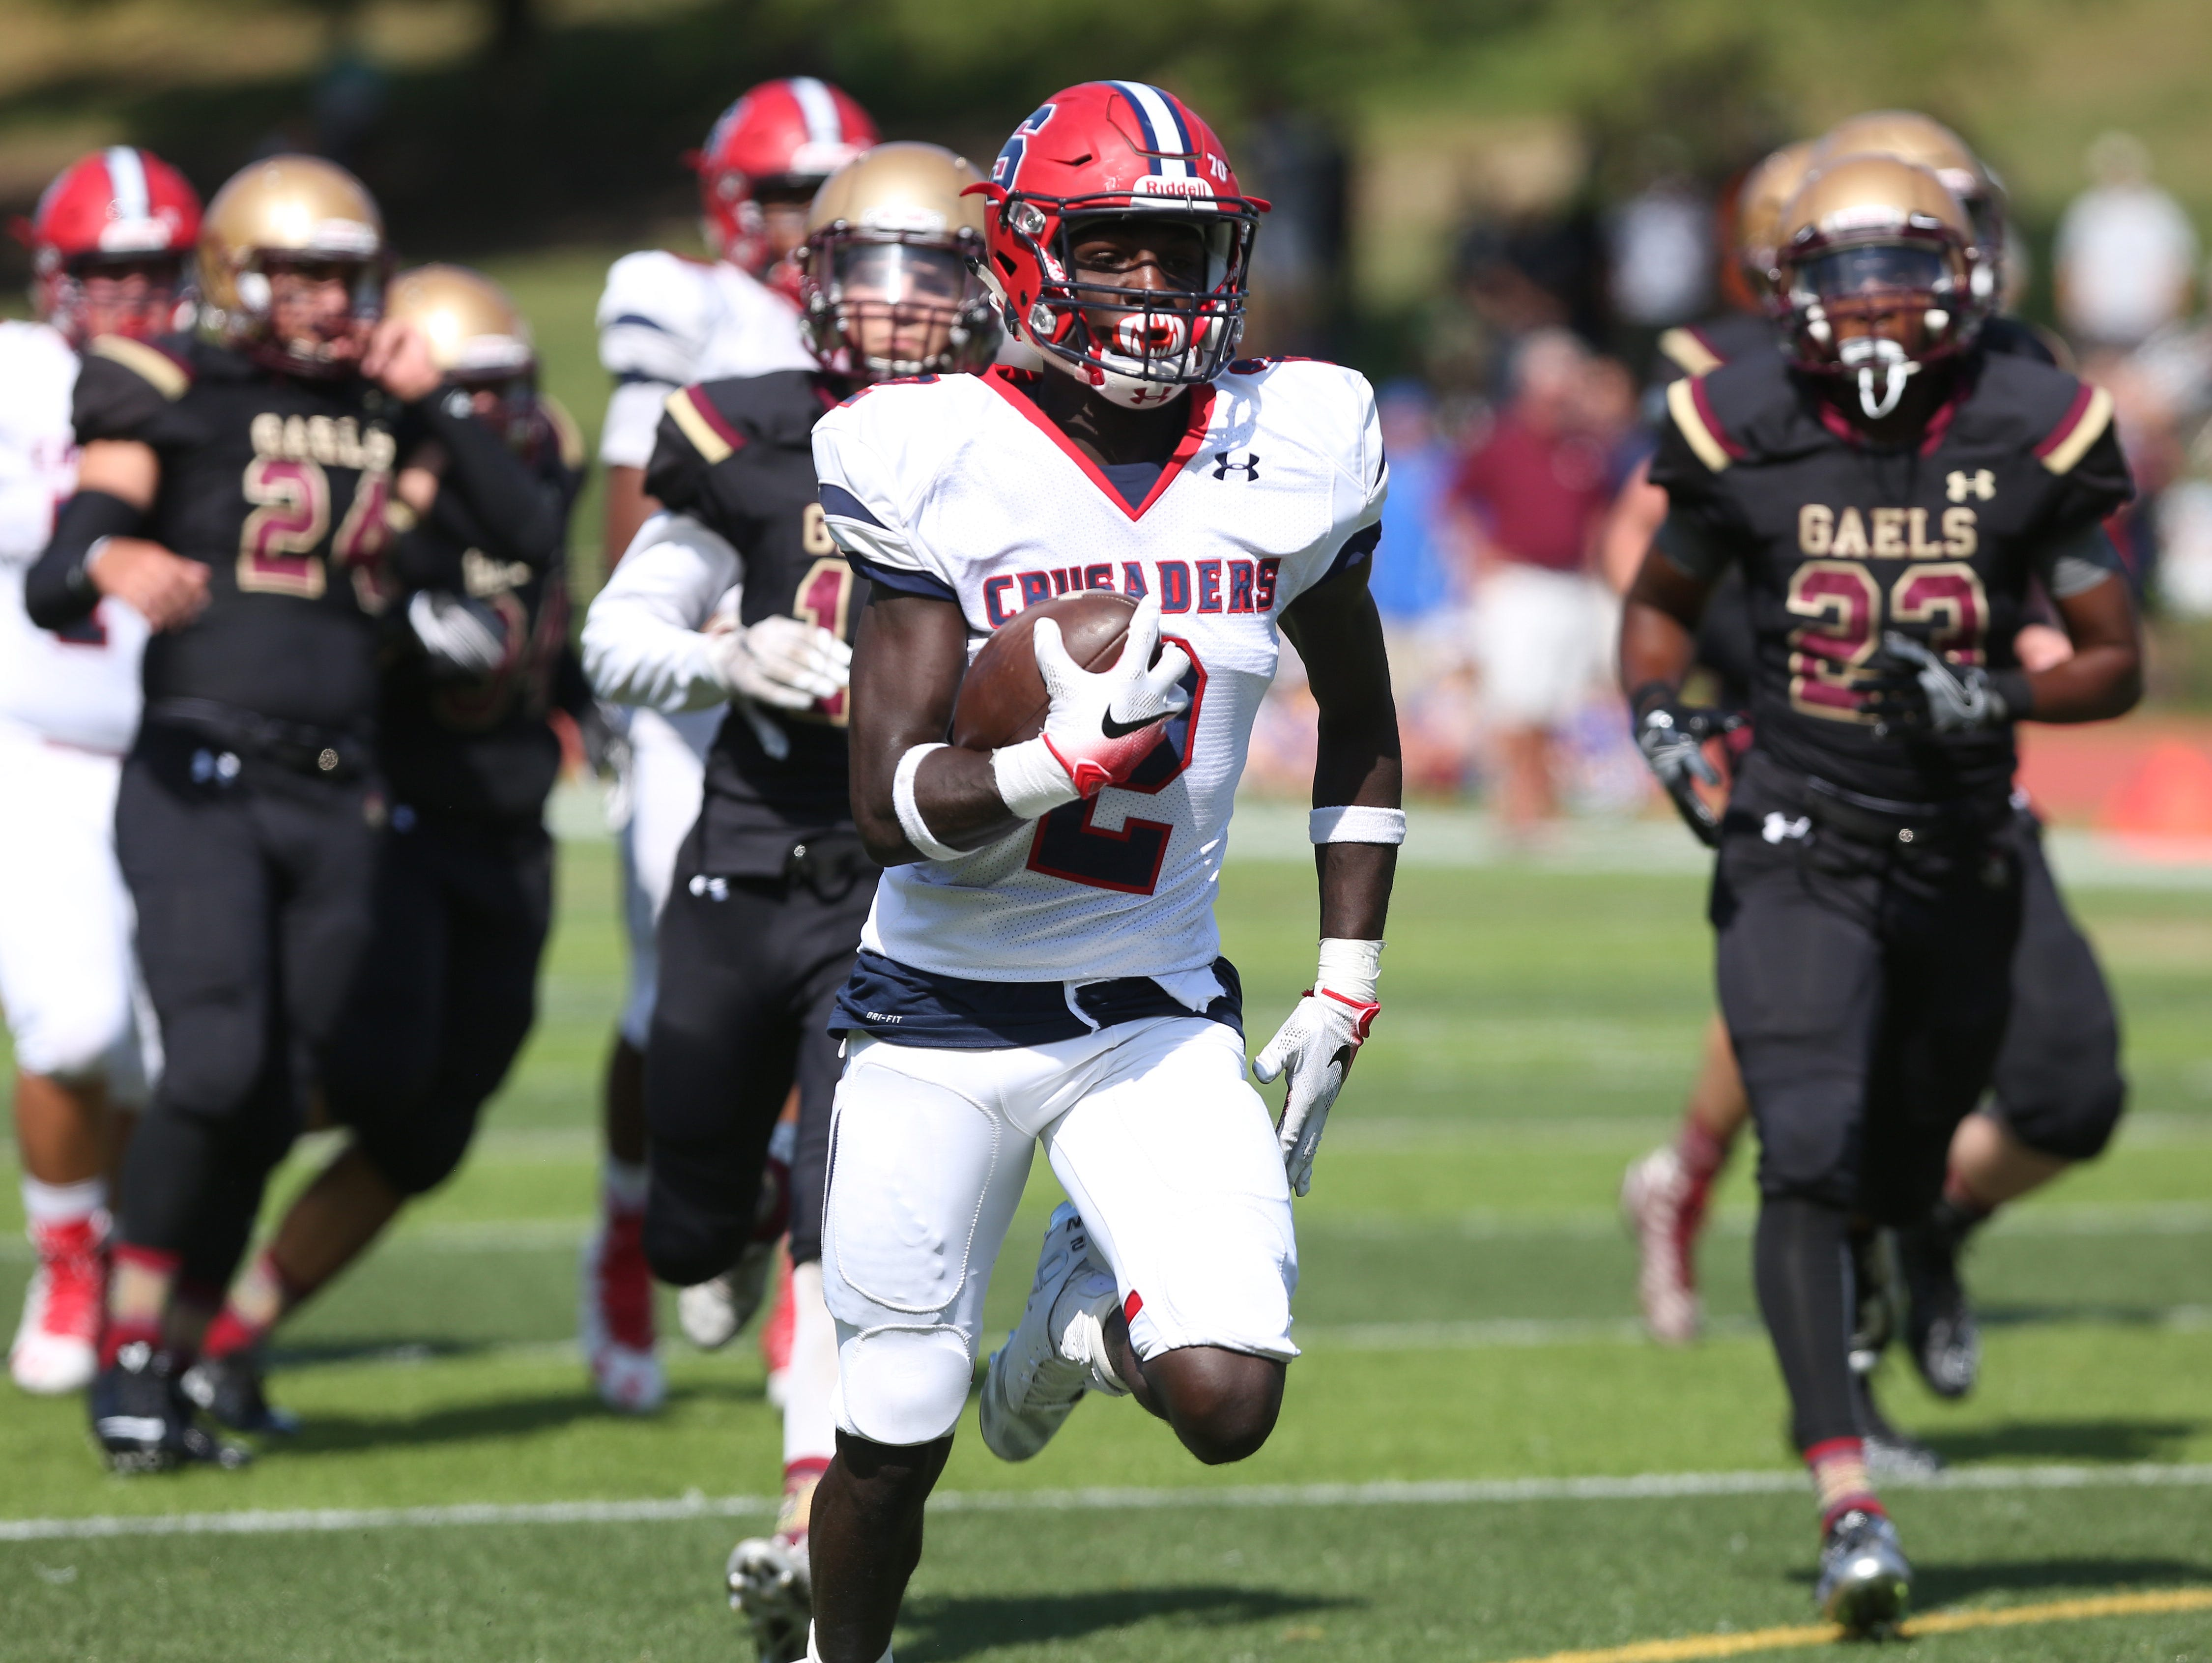 Stepinac's Atrilleon Williams (2) is chased by Iona defenders as he runs into the end zone in the second quarter for his second touchdown of the game, during football action at Iona Prep in New Rochelle Sept. 17, 2016. Stepinac won the game 42-34.